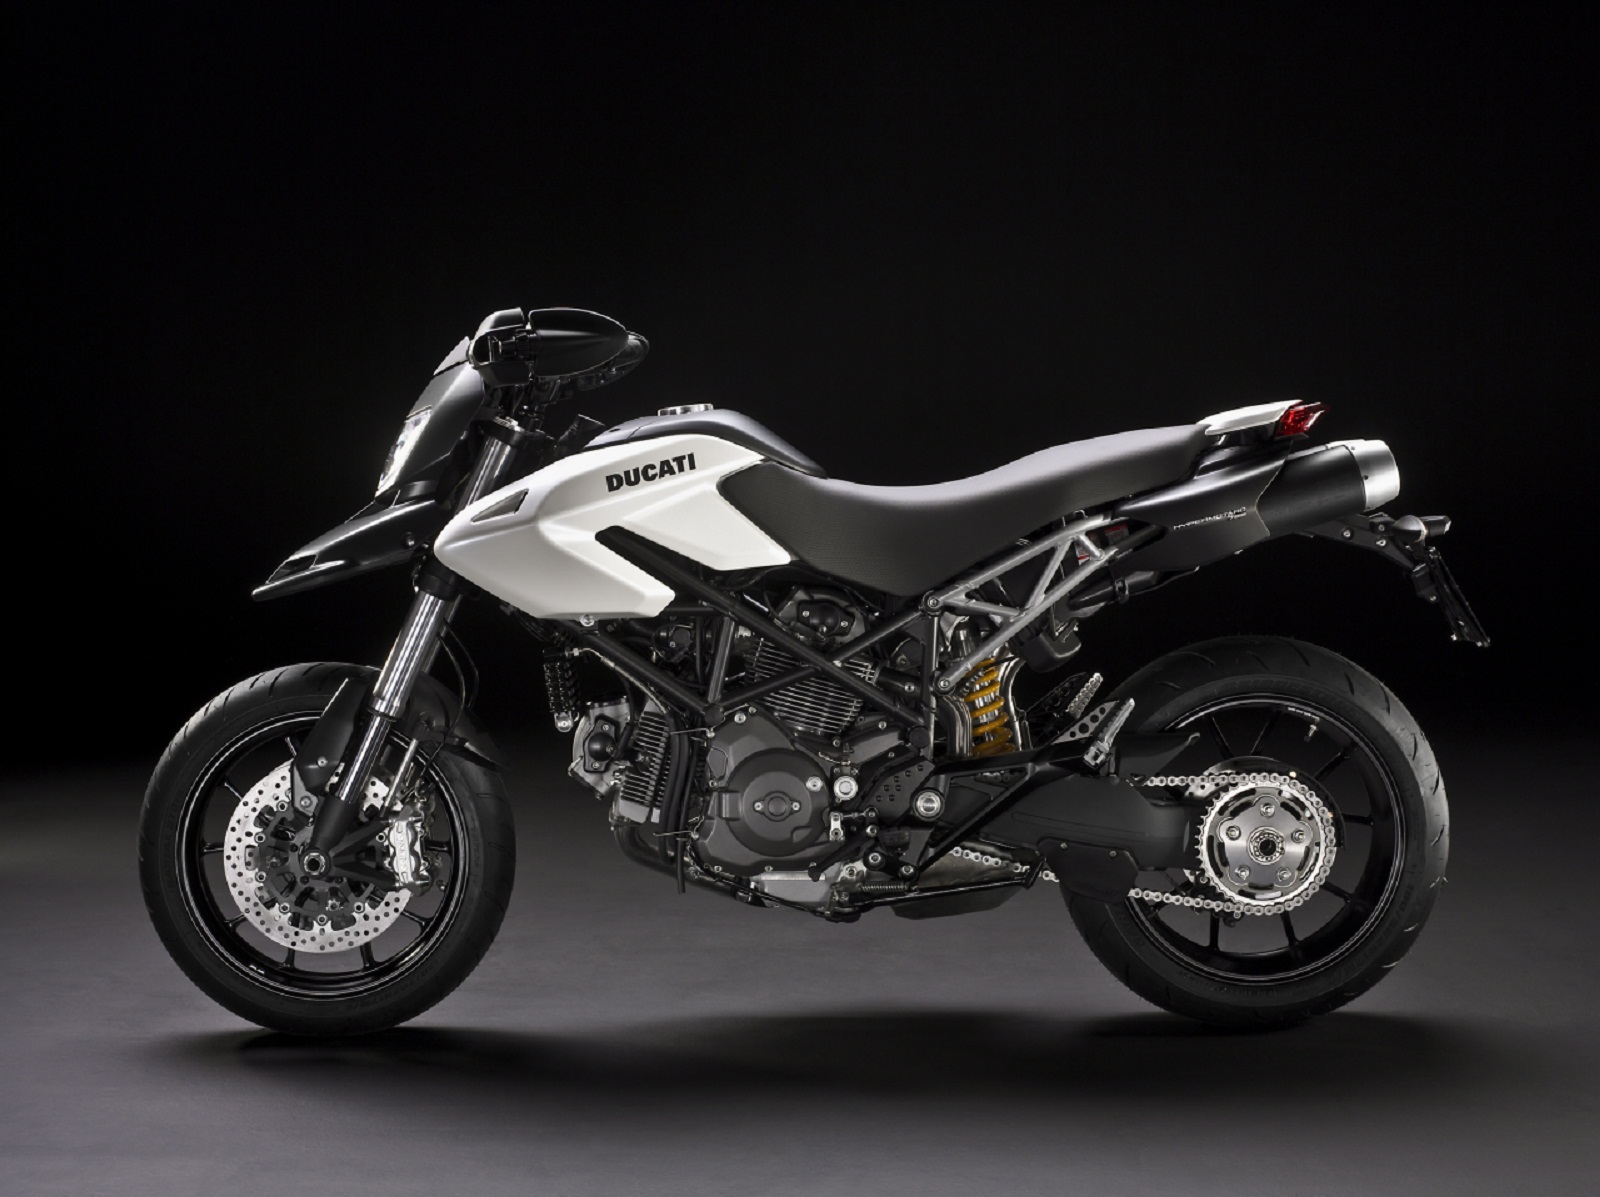 2012 ducati hypermotard 796 gallery 439721 top speed. Black Bedroom Furniture Sets. Home Design Ideas